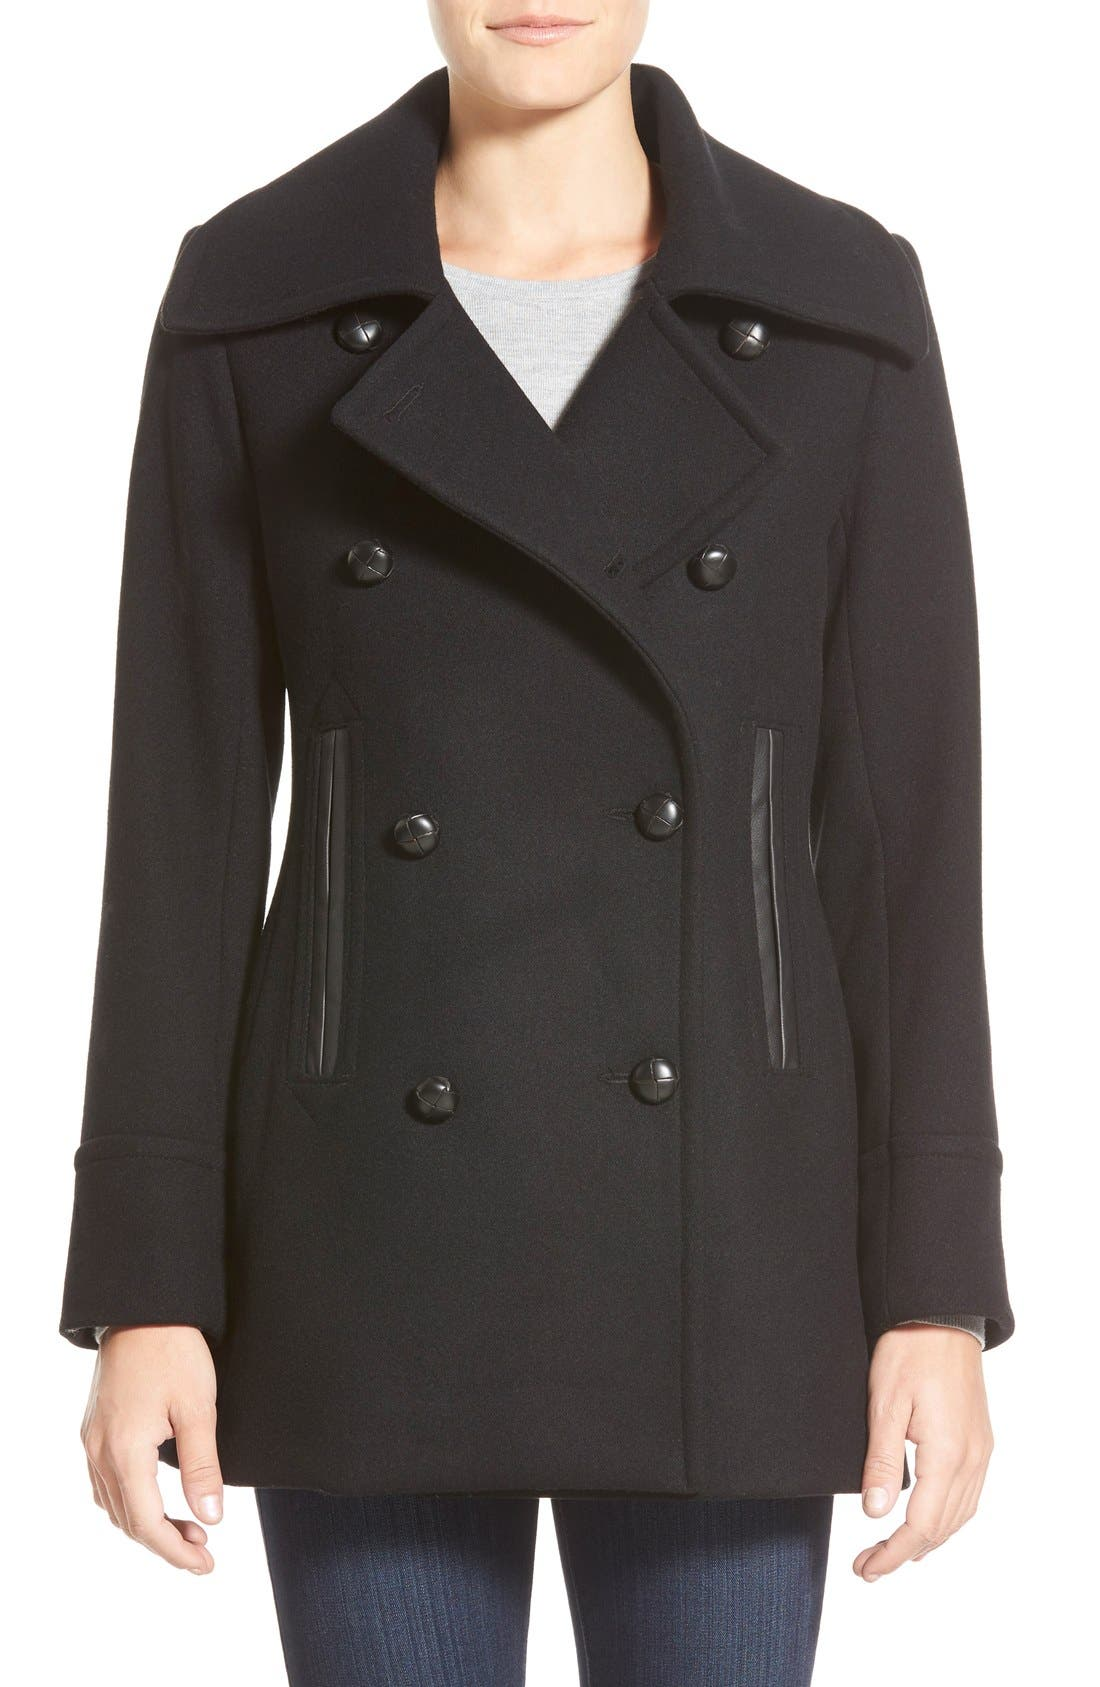 Alternate Image 1 Selected - Pendleton'Cascades' Double Breasted Wool Blend Peacoat